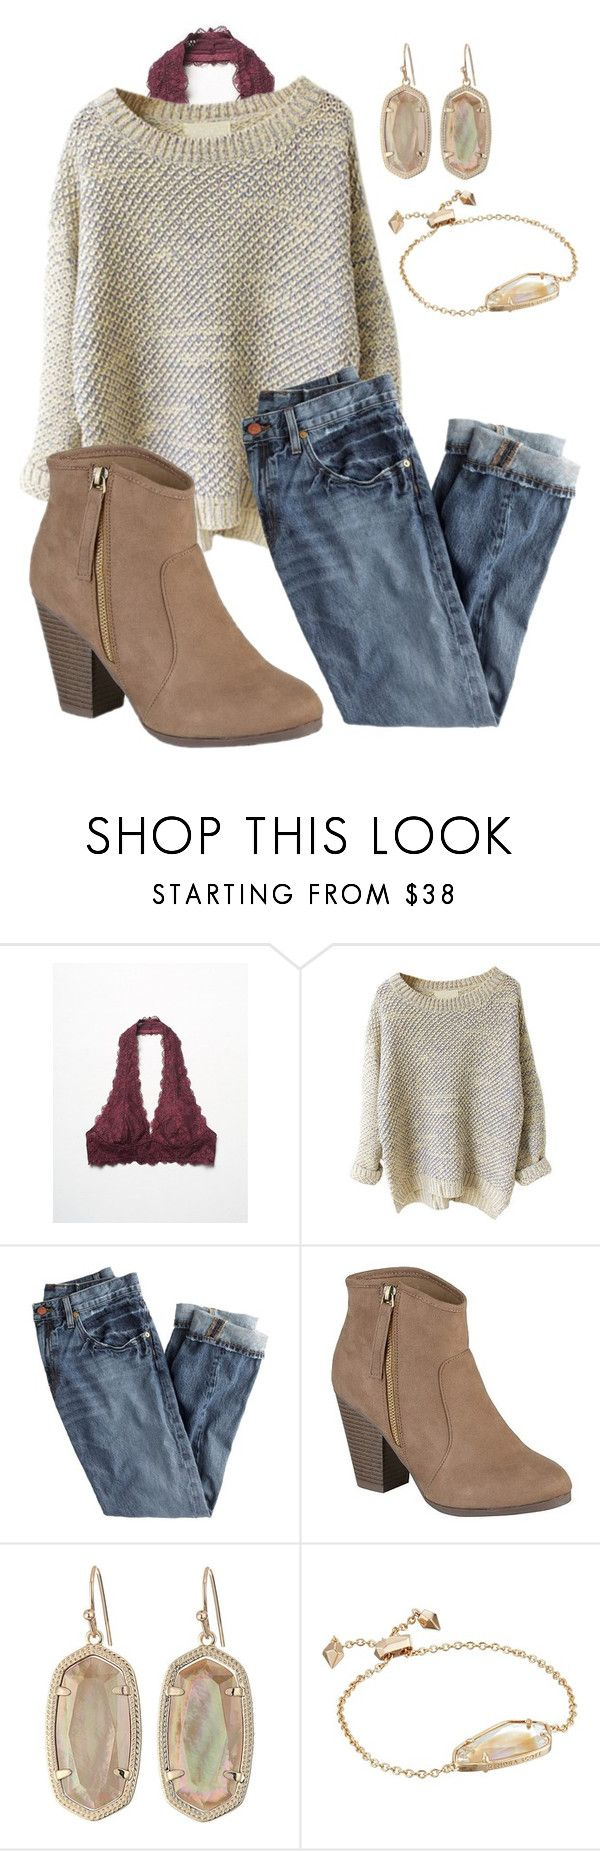 """Don't worry. Sometimes everything is going wrong for all the right reasons."" by swwbama ❤ liked on Polyvore featuring Free People, J.Crew, Journee Collection and Kendra Scott"